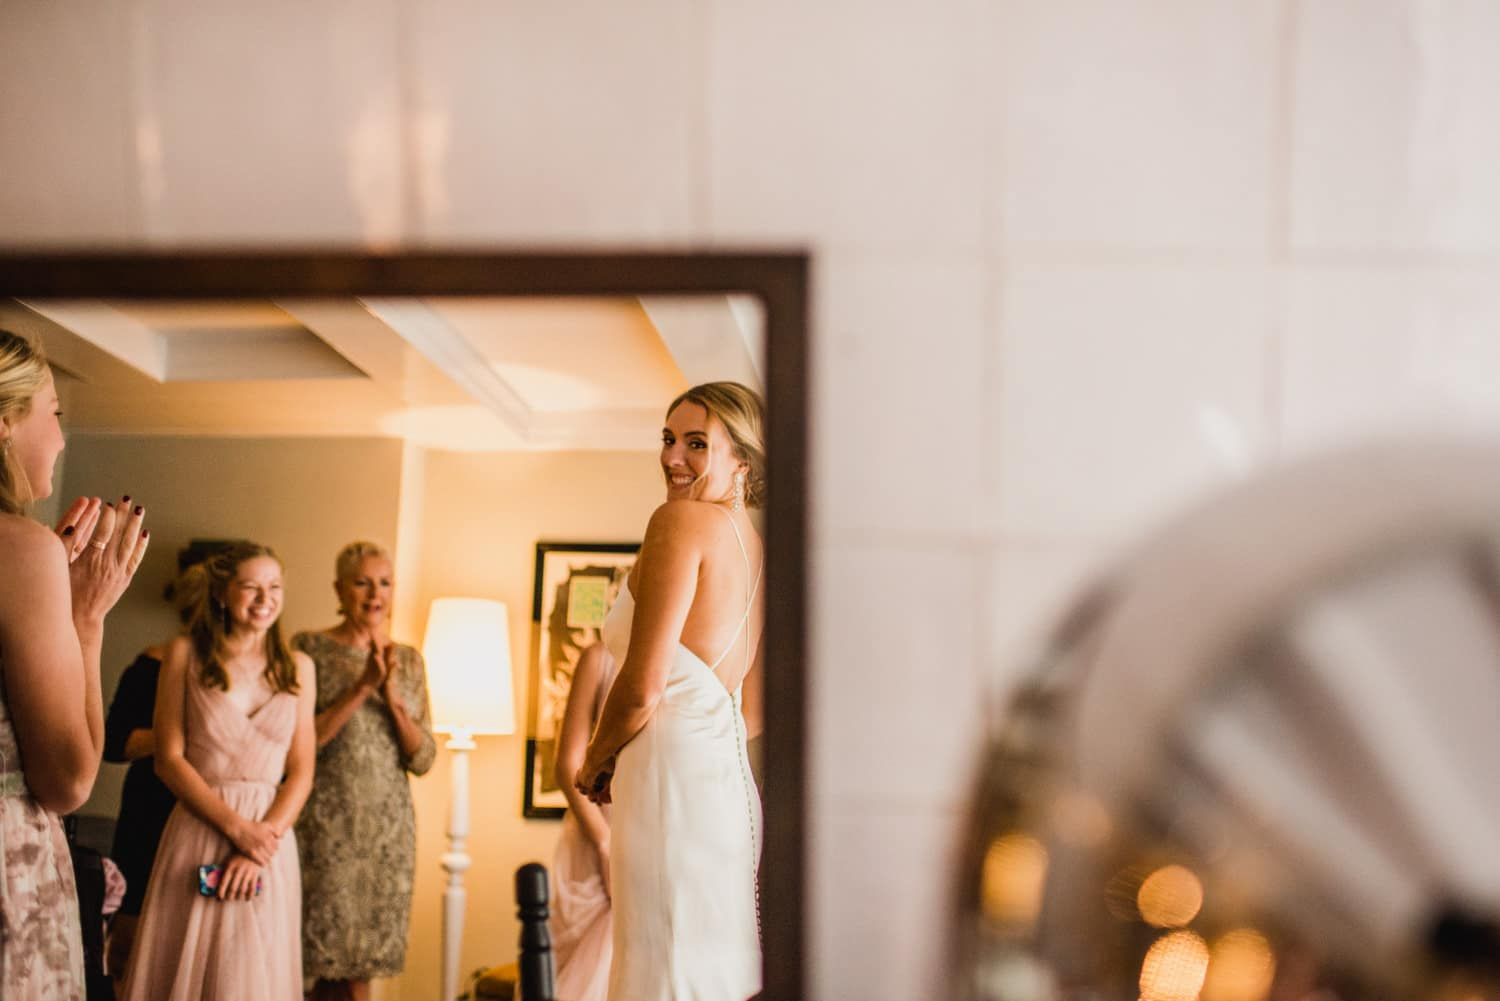 bride in reflection of mirror